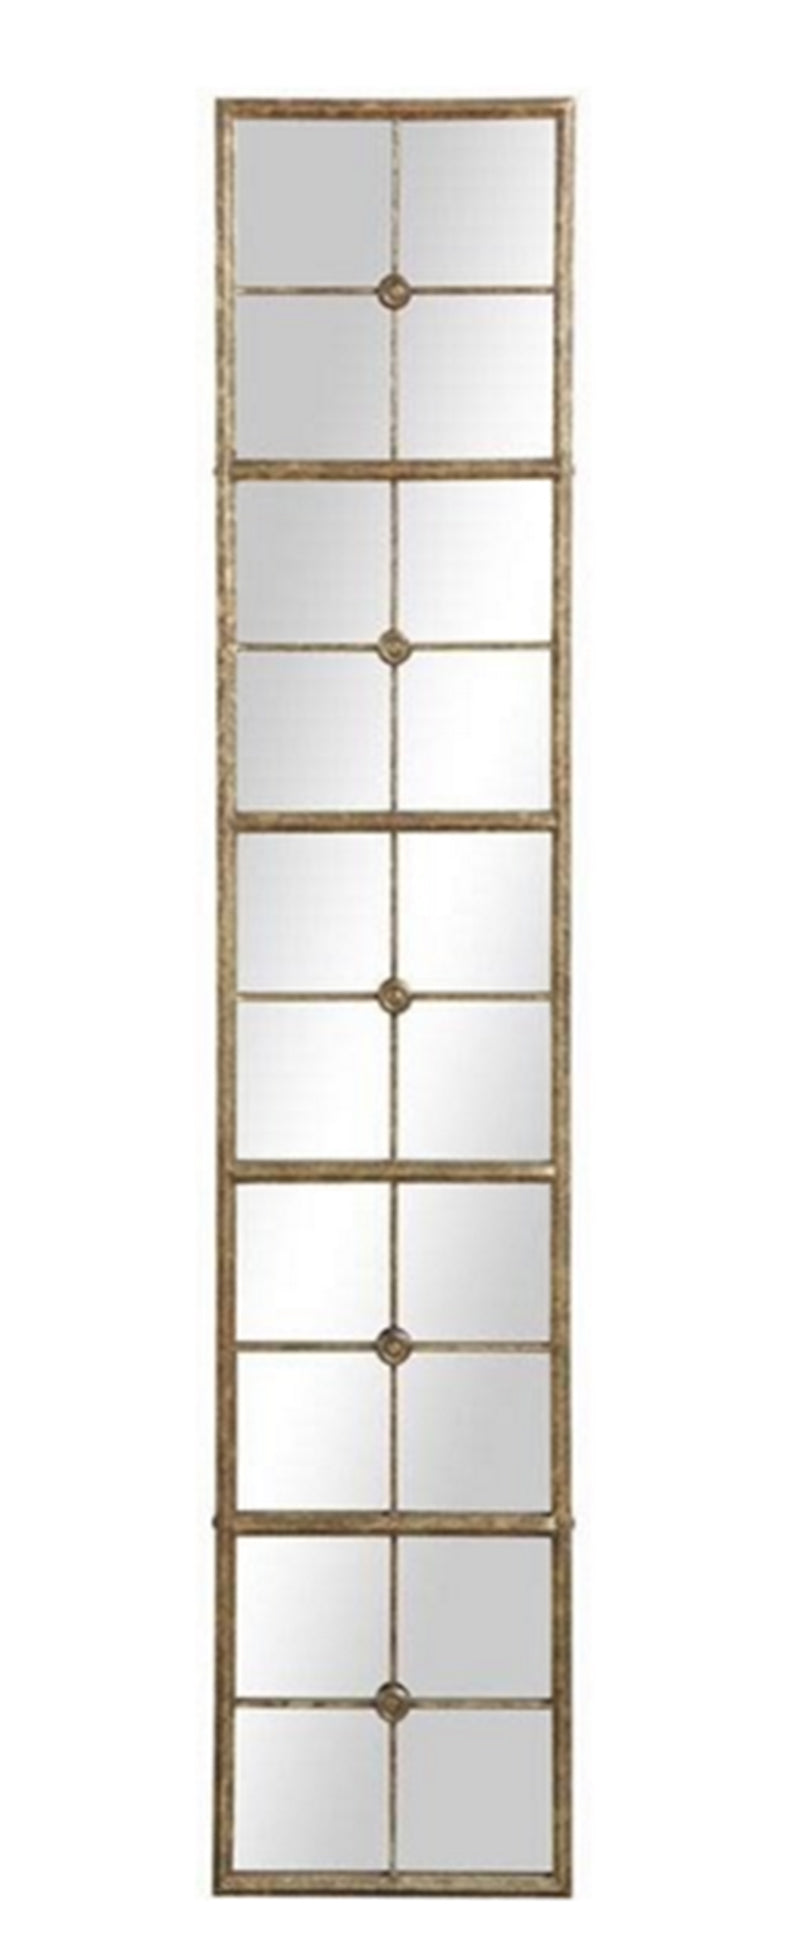 Antique Gold Metal framed. Mirror